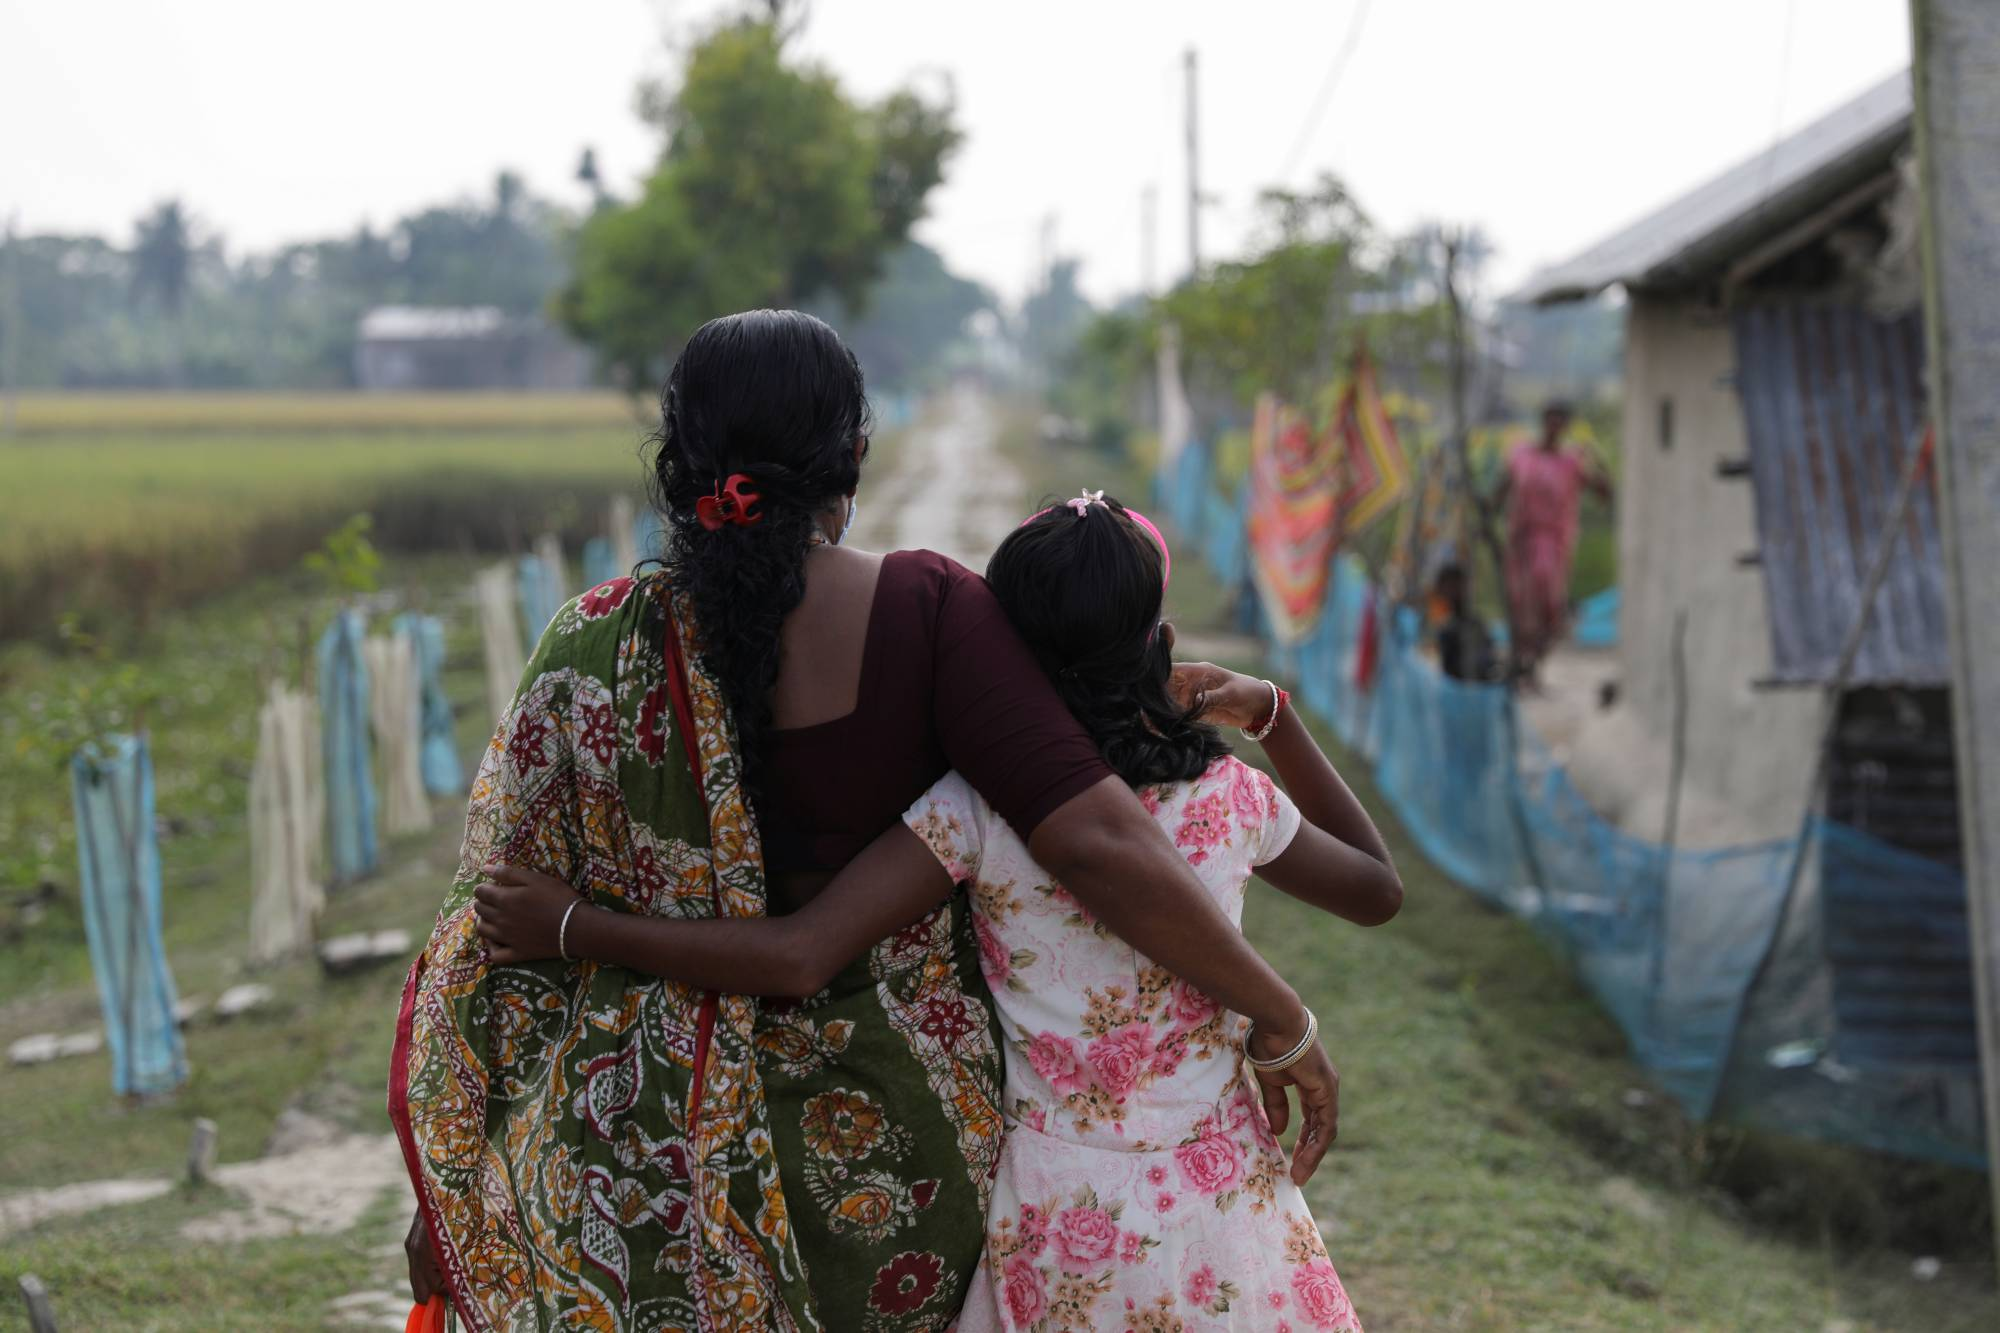 Parul Haldar, 39, whose husband died in a tiger attack during a fishing trip, and her daughter Papri Haldar, 11 | REUTERS